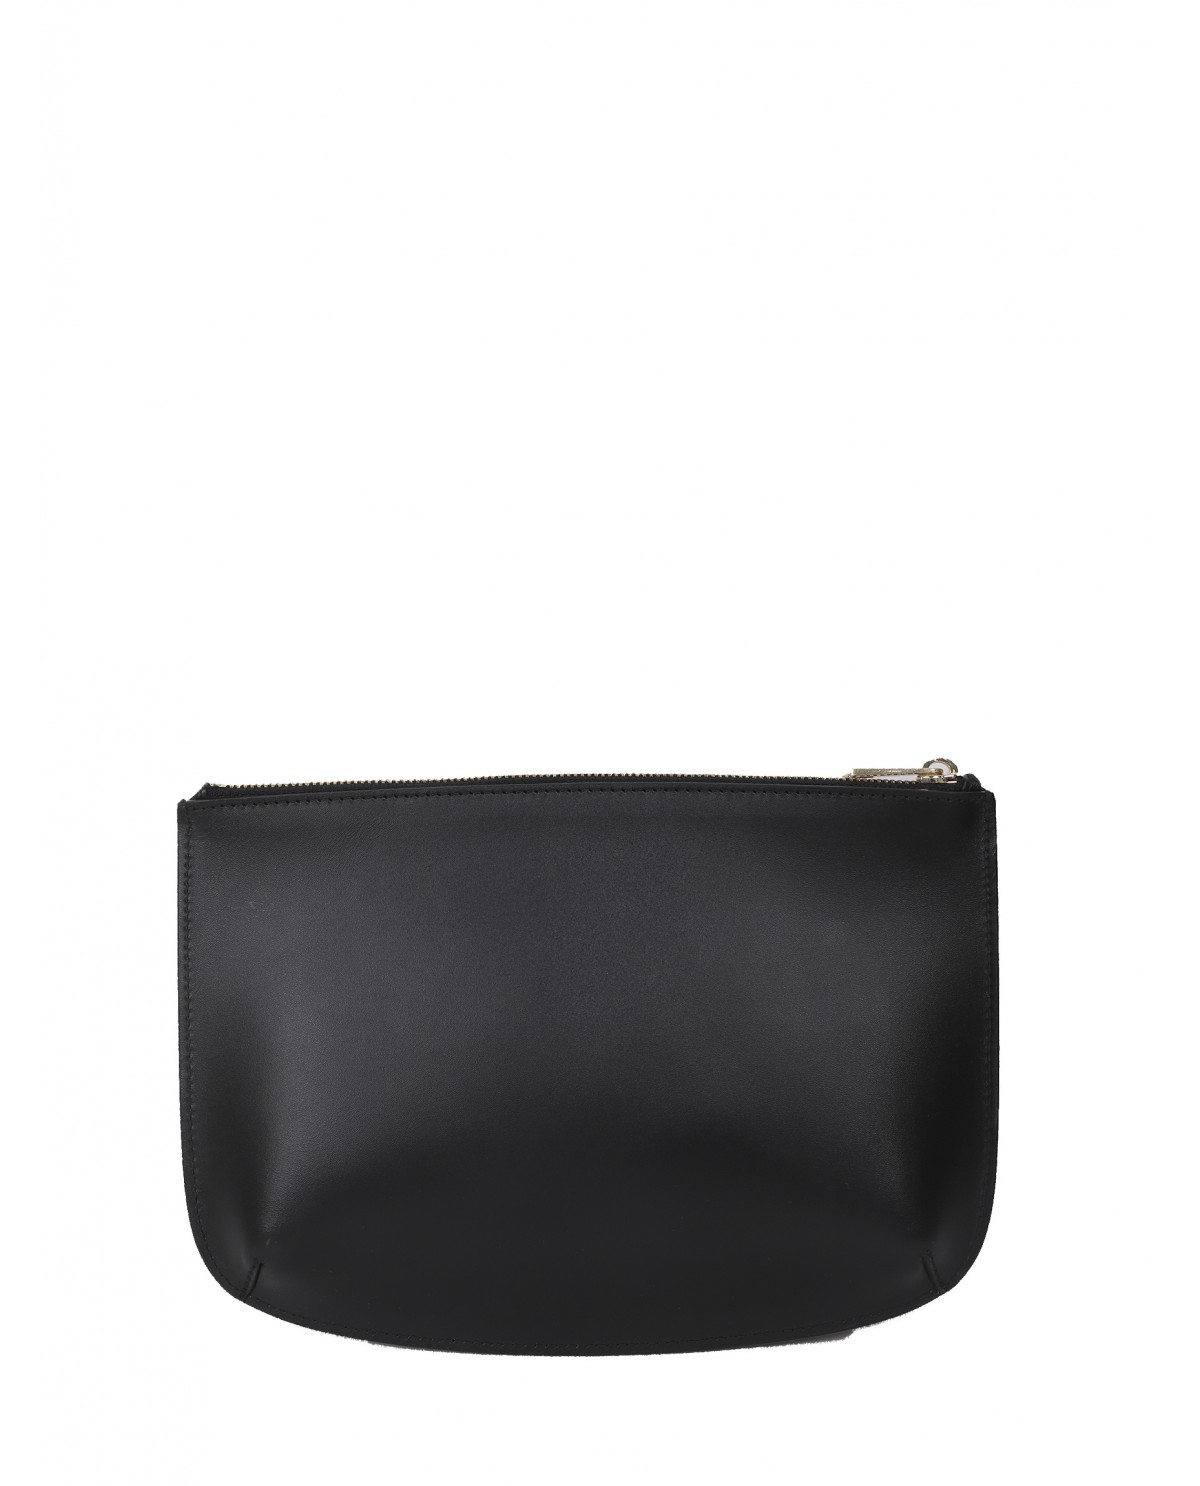 Balenciaga black Bazar bag